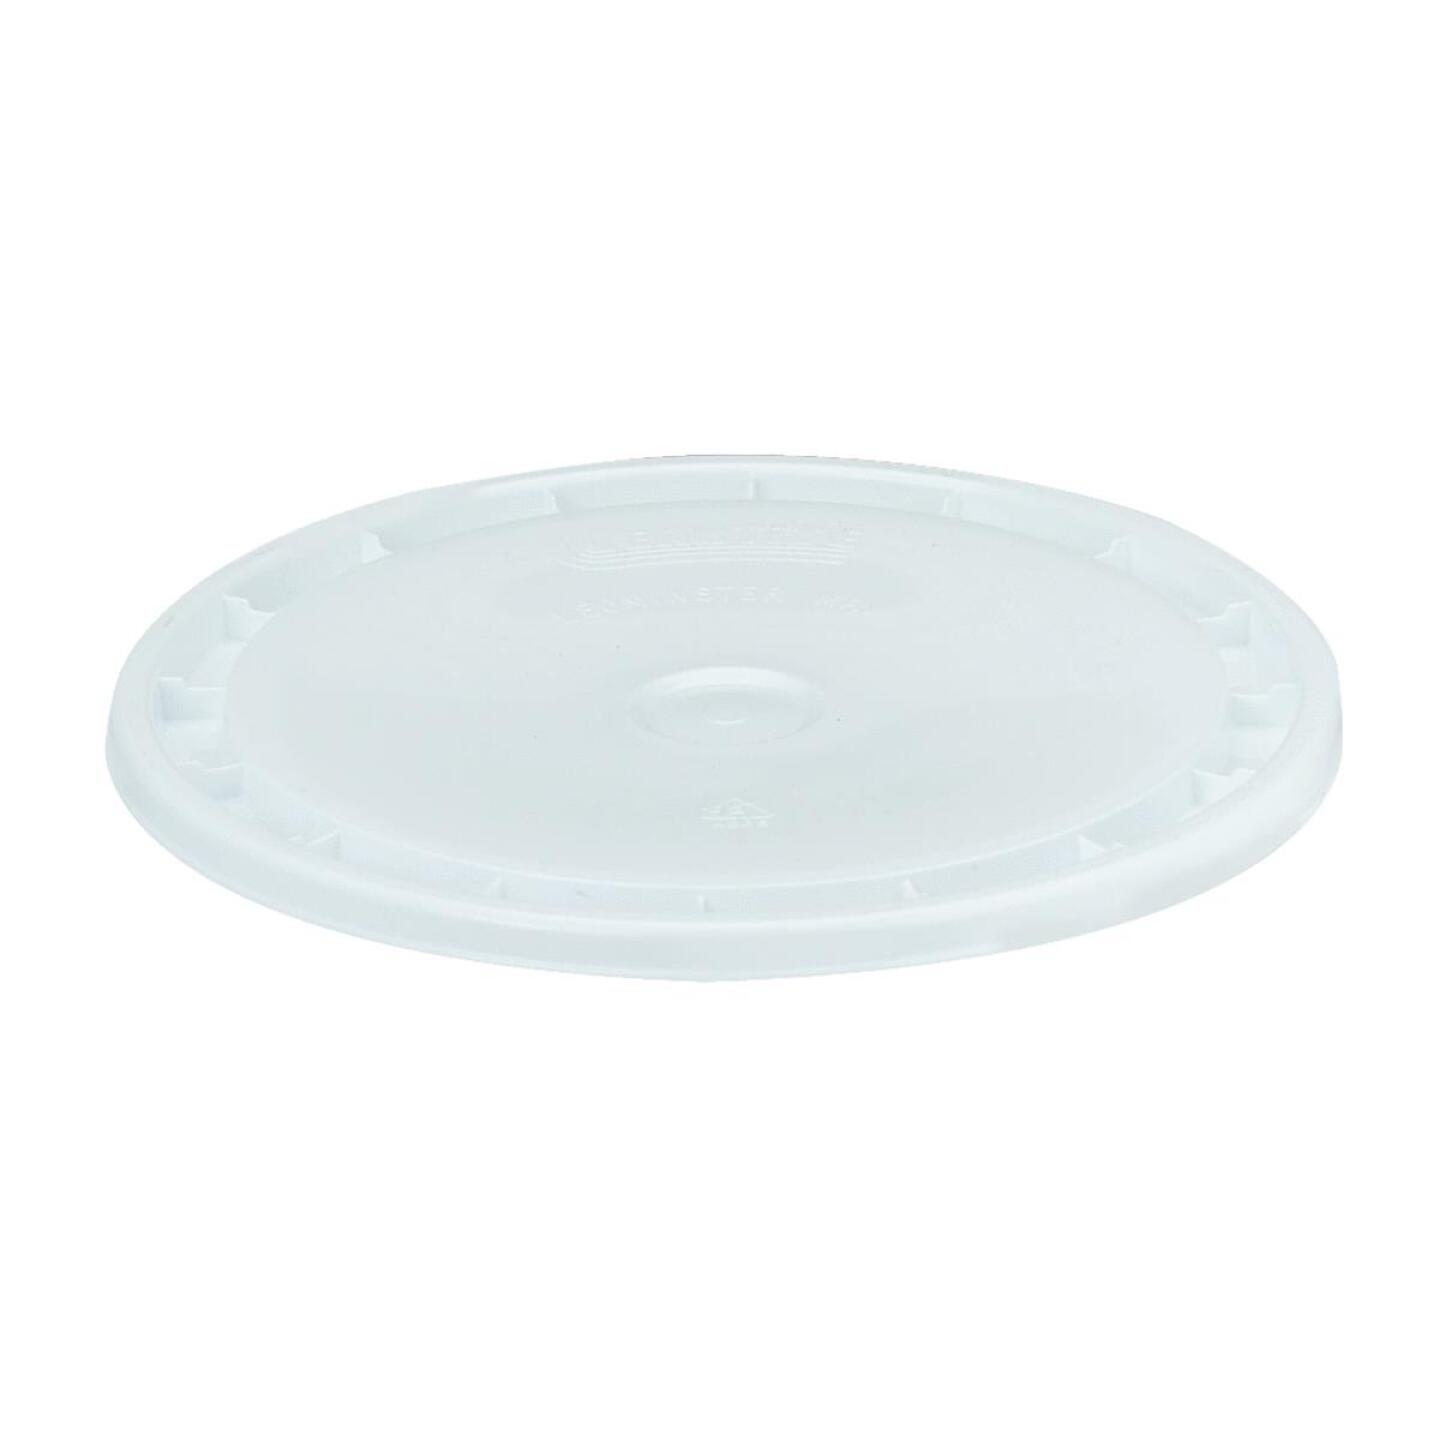 Leaktite Easy-Off 5 Gallon 12 in. x 1 in. White Lid Image 1